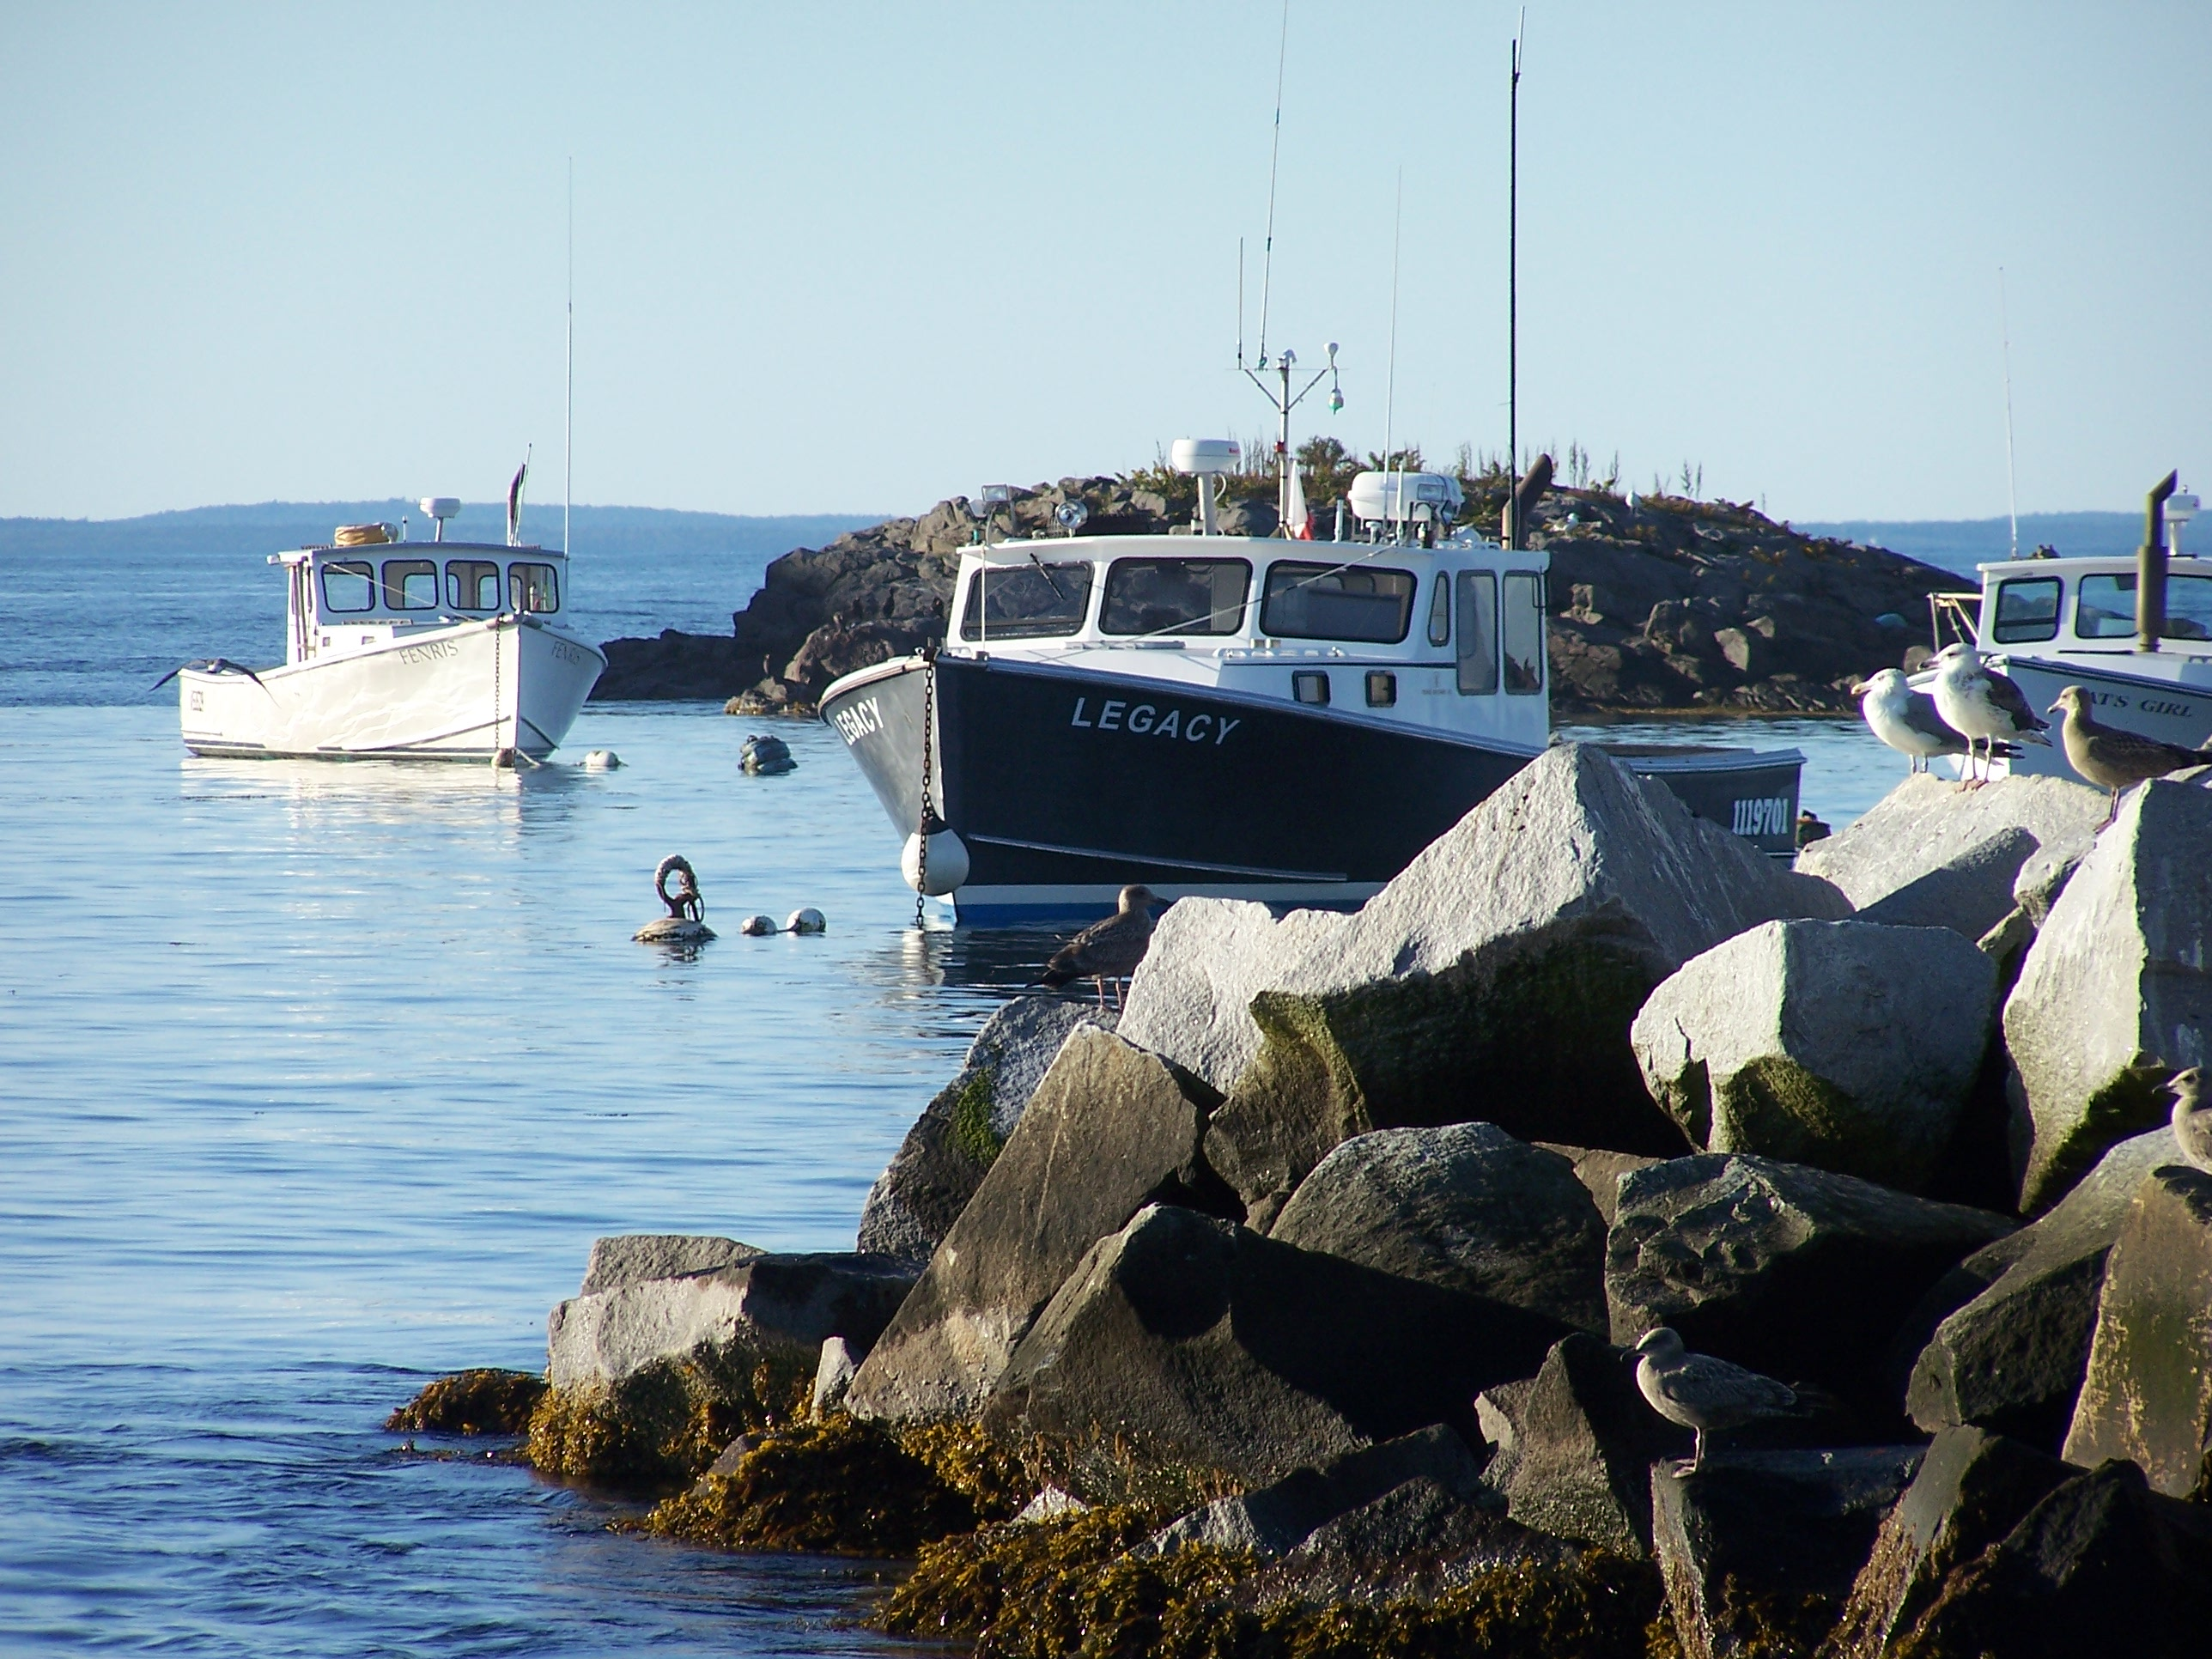 Lobster boat legacy of monhegan island me for Best time to visit maine for lobster